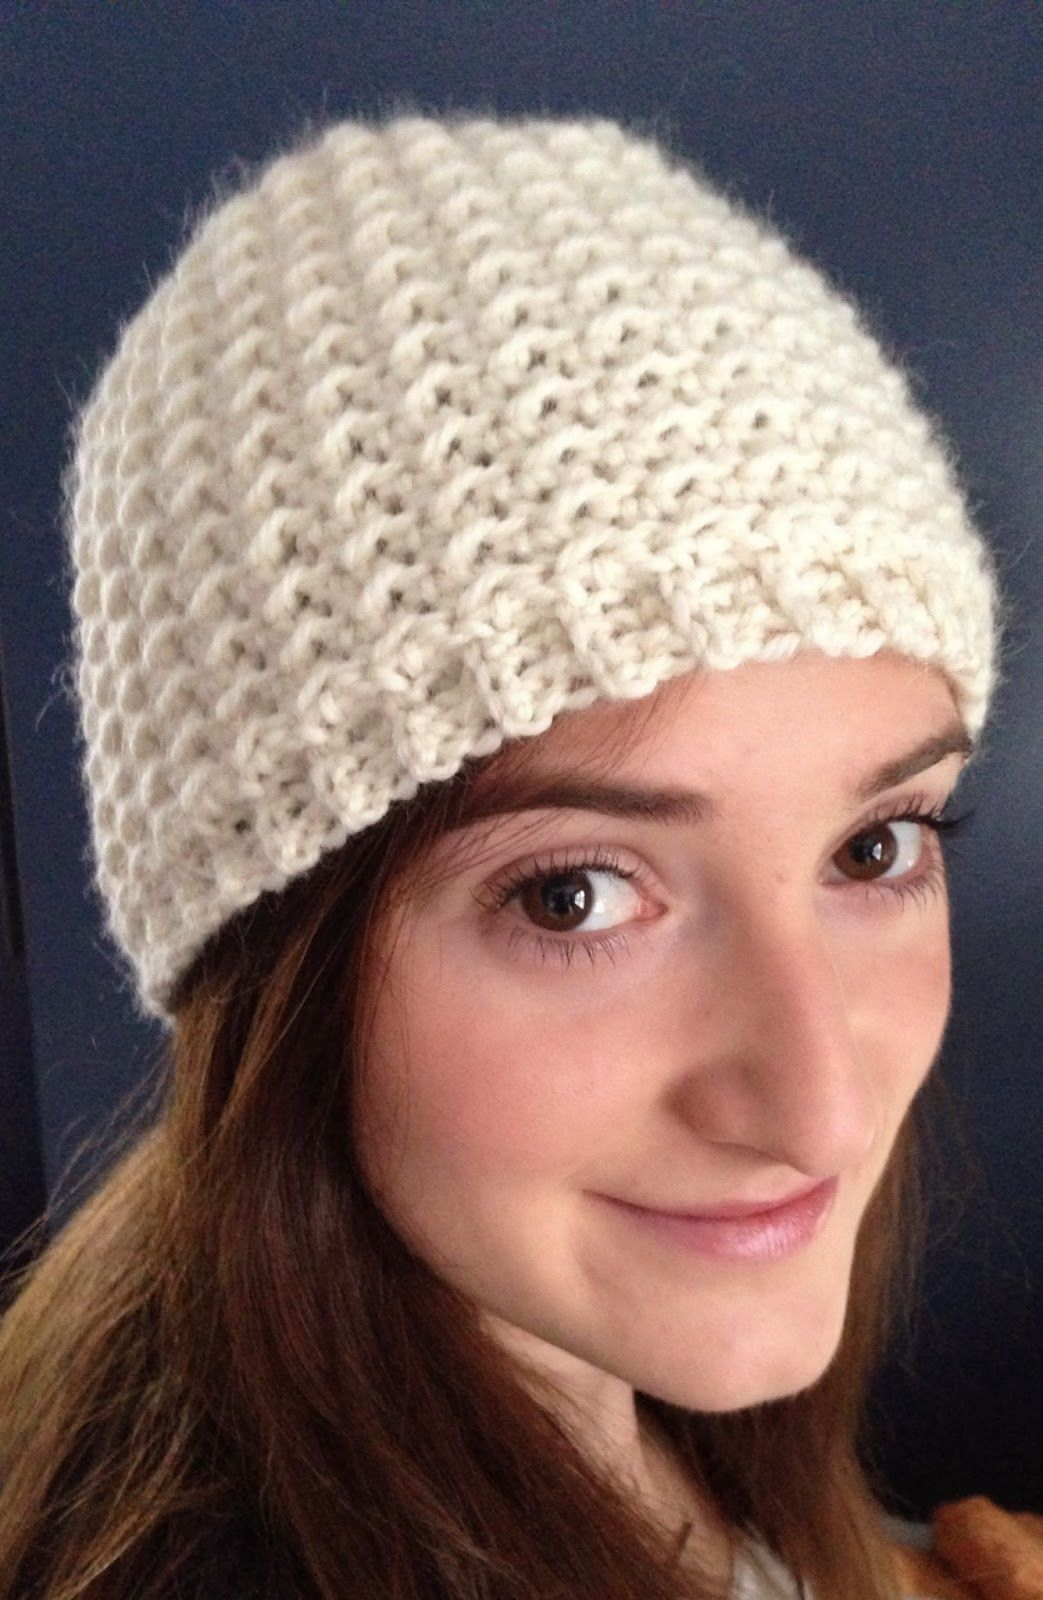 Simple and cute free crochet hat pattern baby pinterest free simple and cute free crochet hat pattern bankloansurffo Image collections